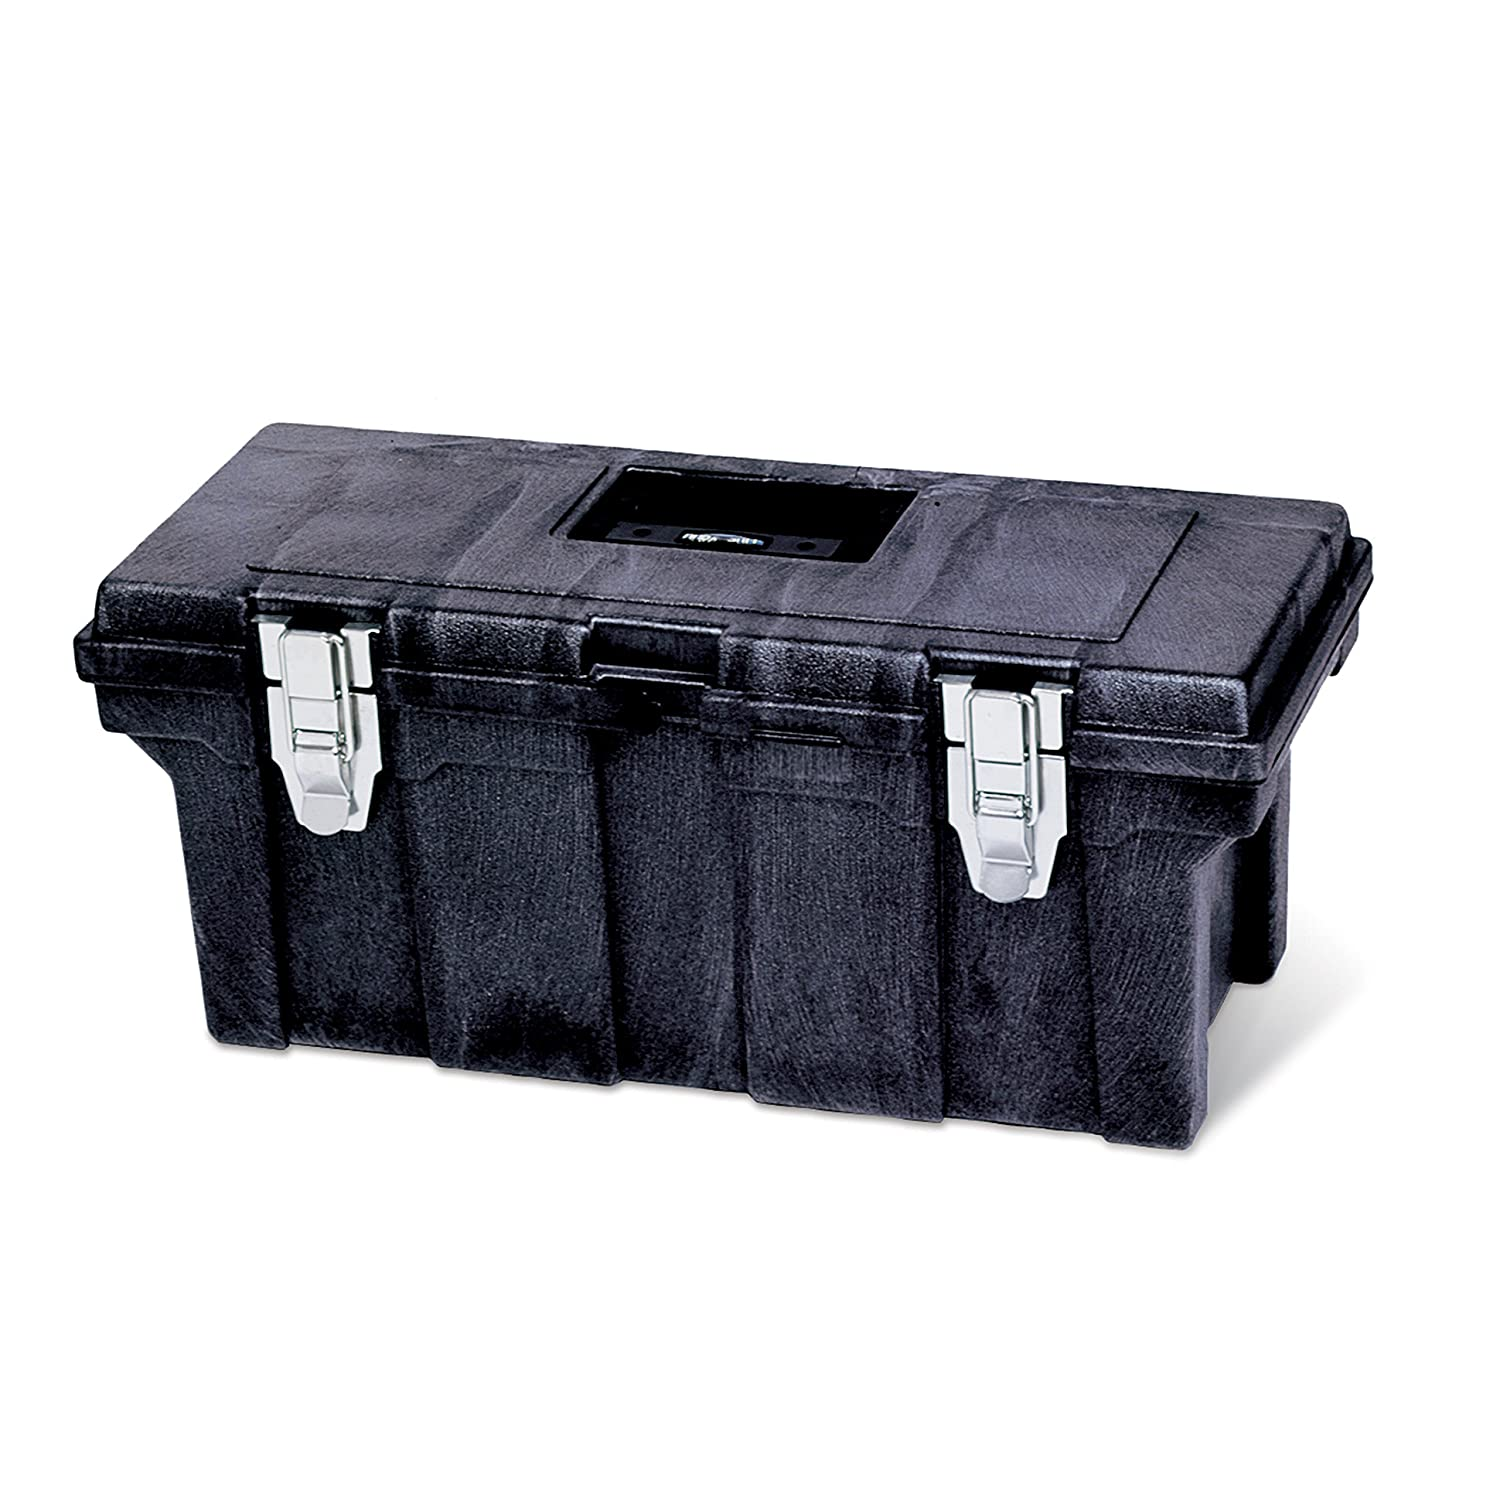 Rubbermaid Commercial Products - Caja de herramientas, color negro ...